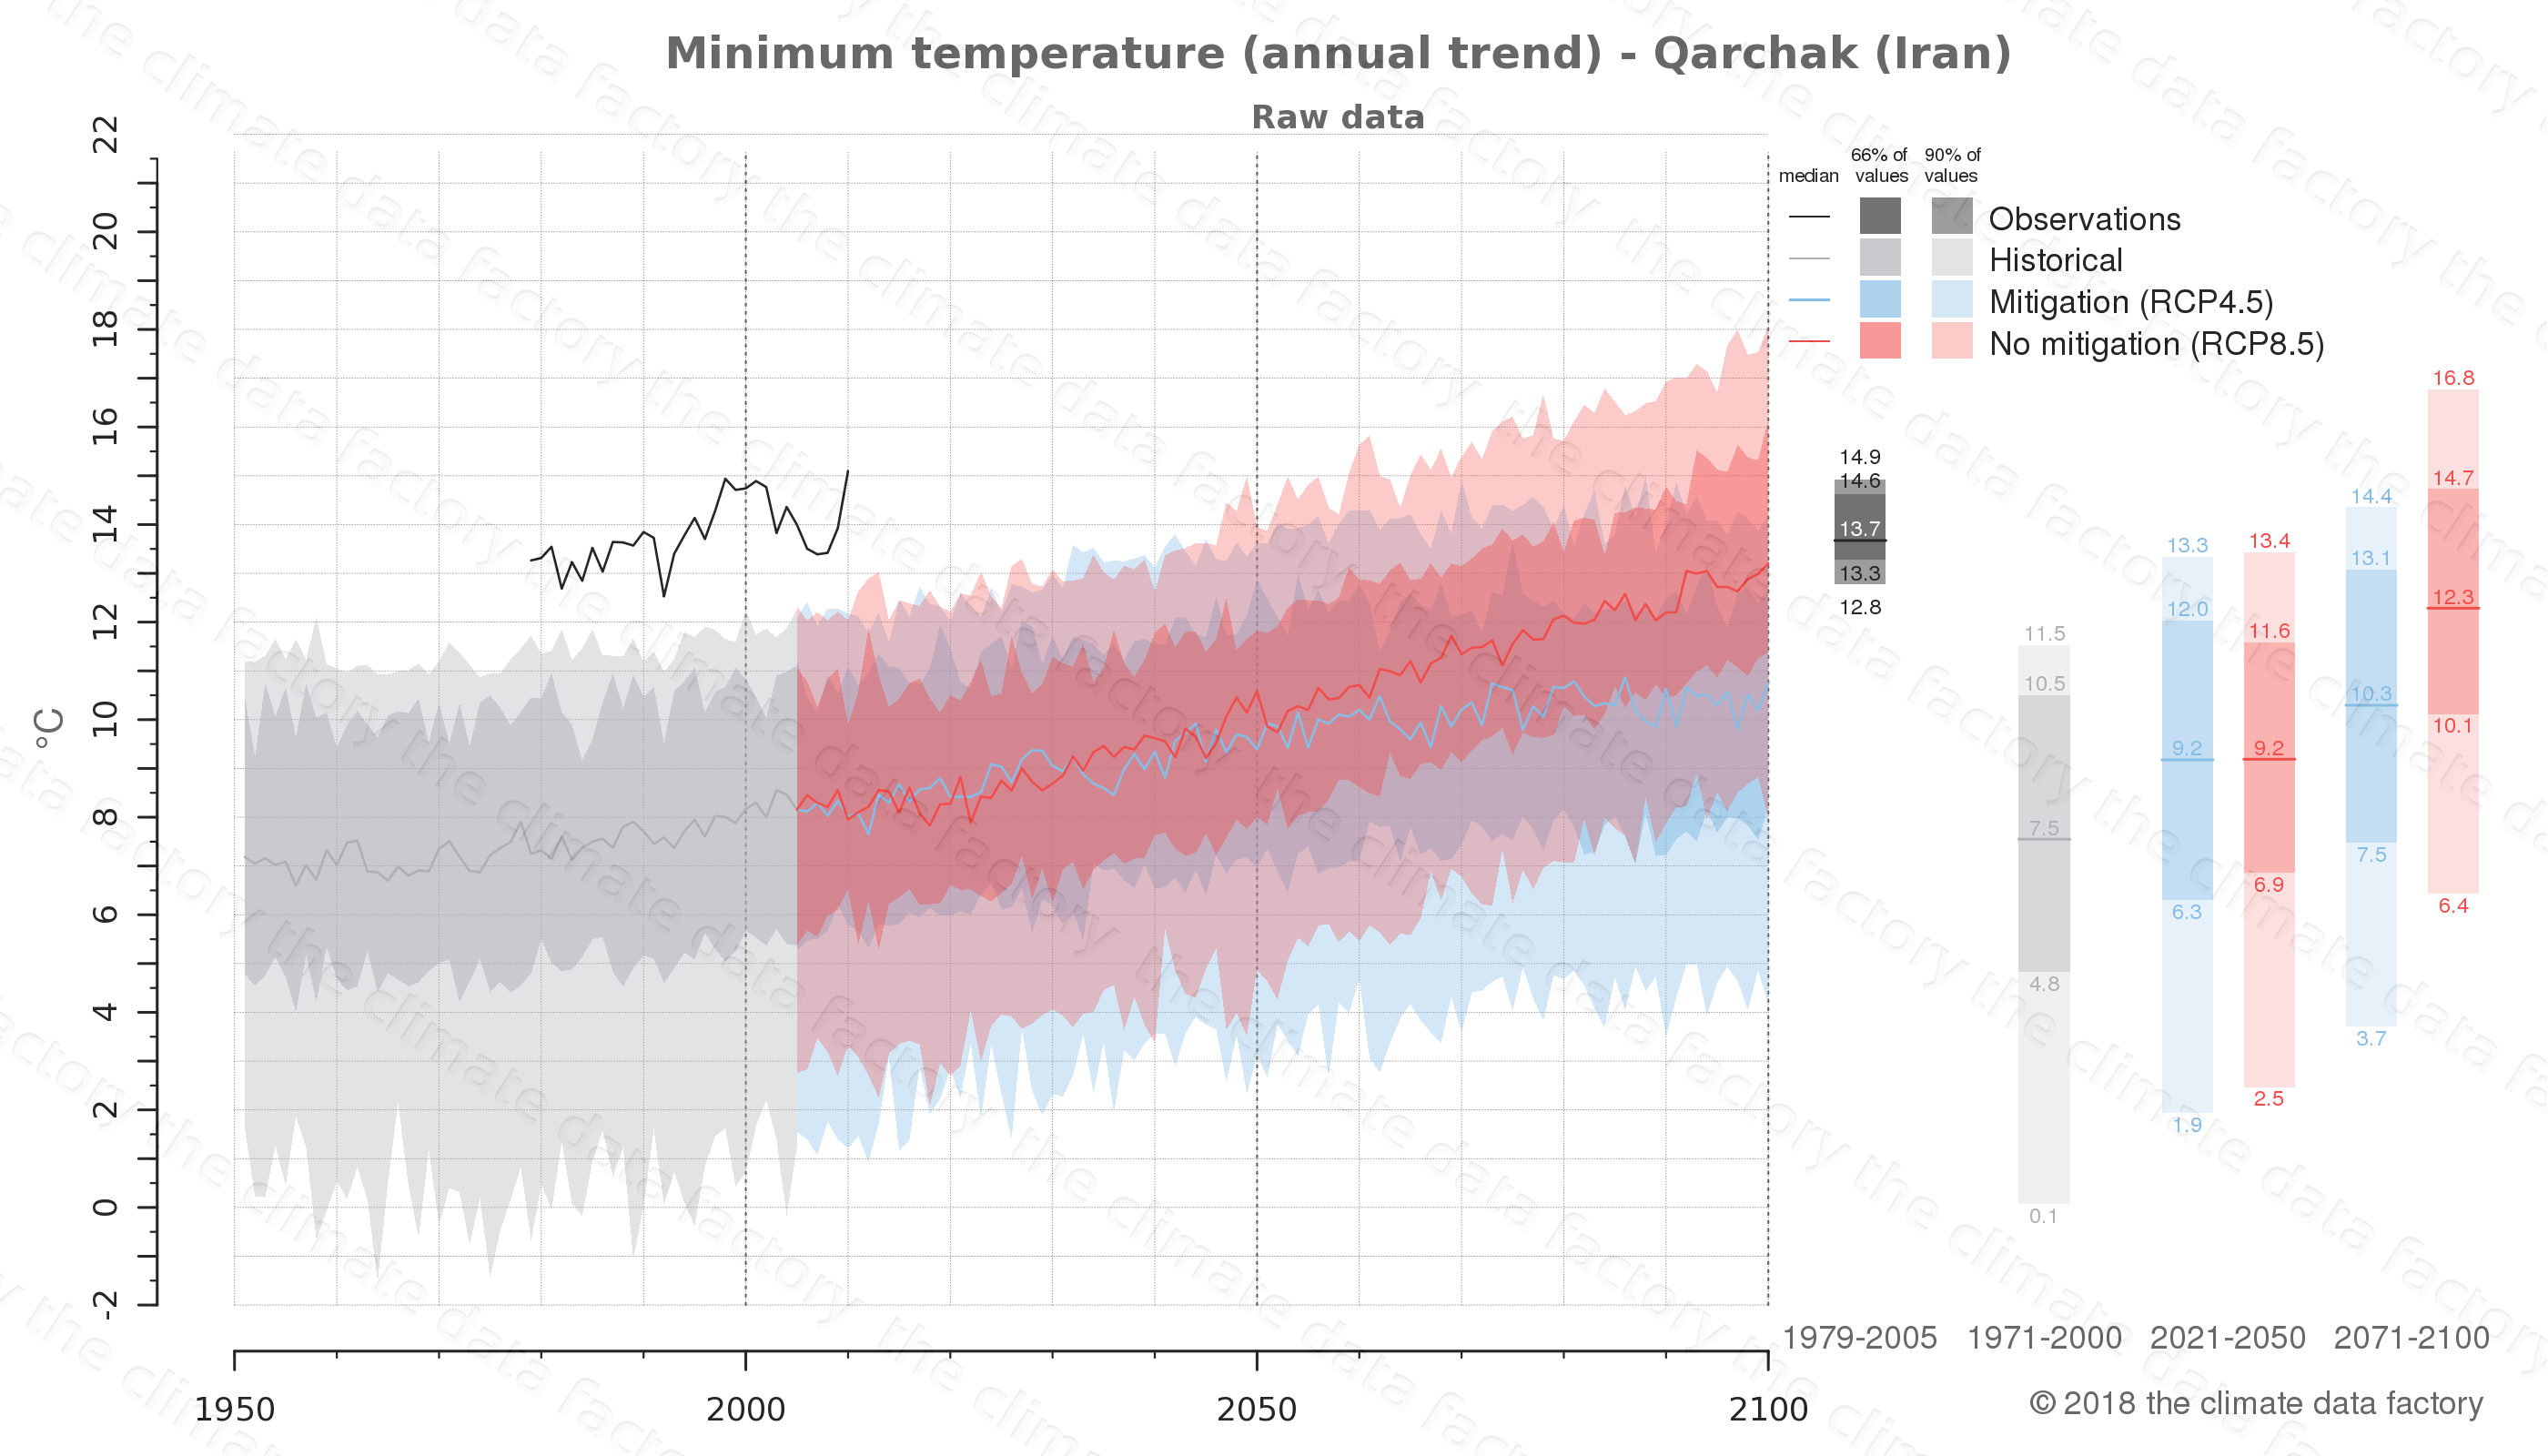 climate change data policy adaptation climate graph city data minimum-temperature qarchak iran